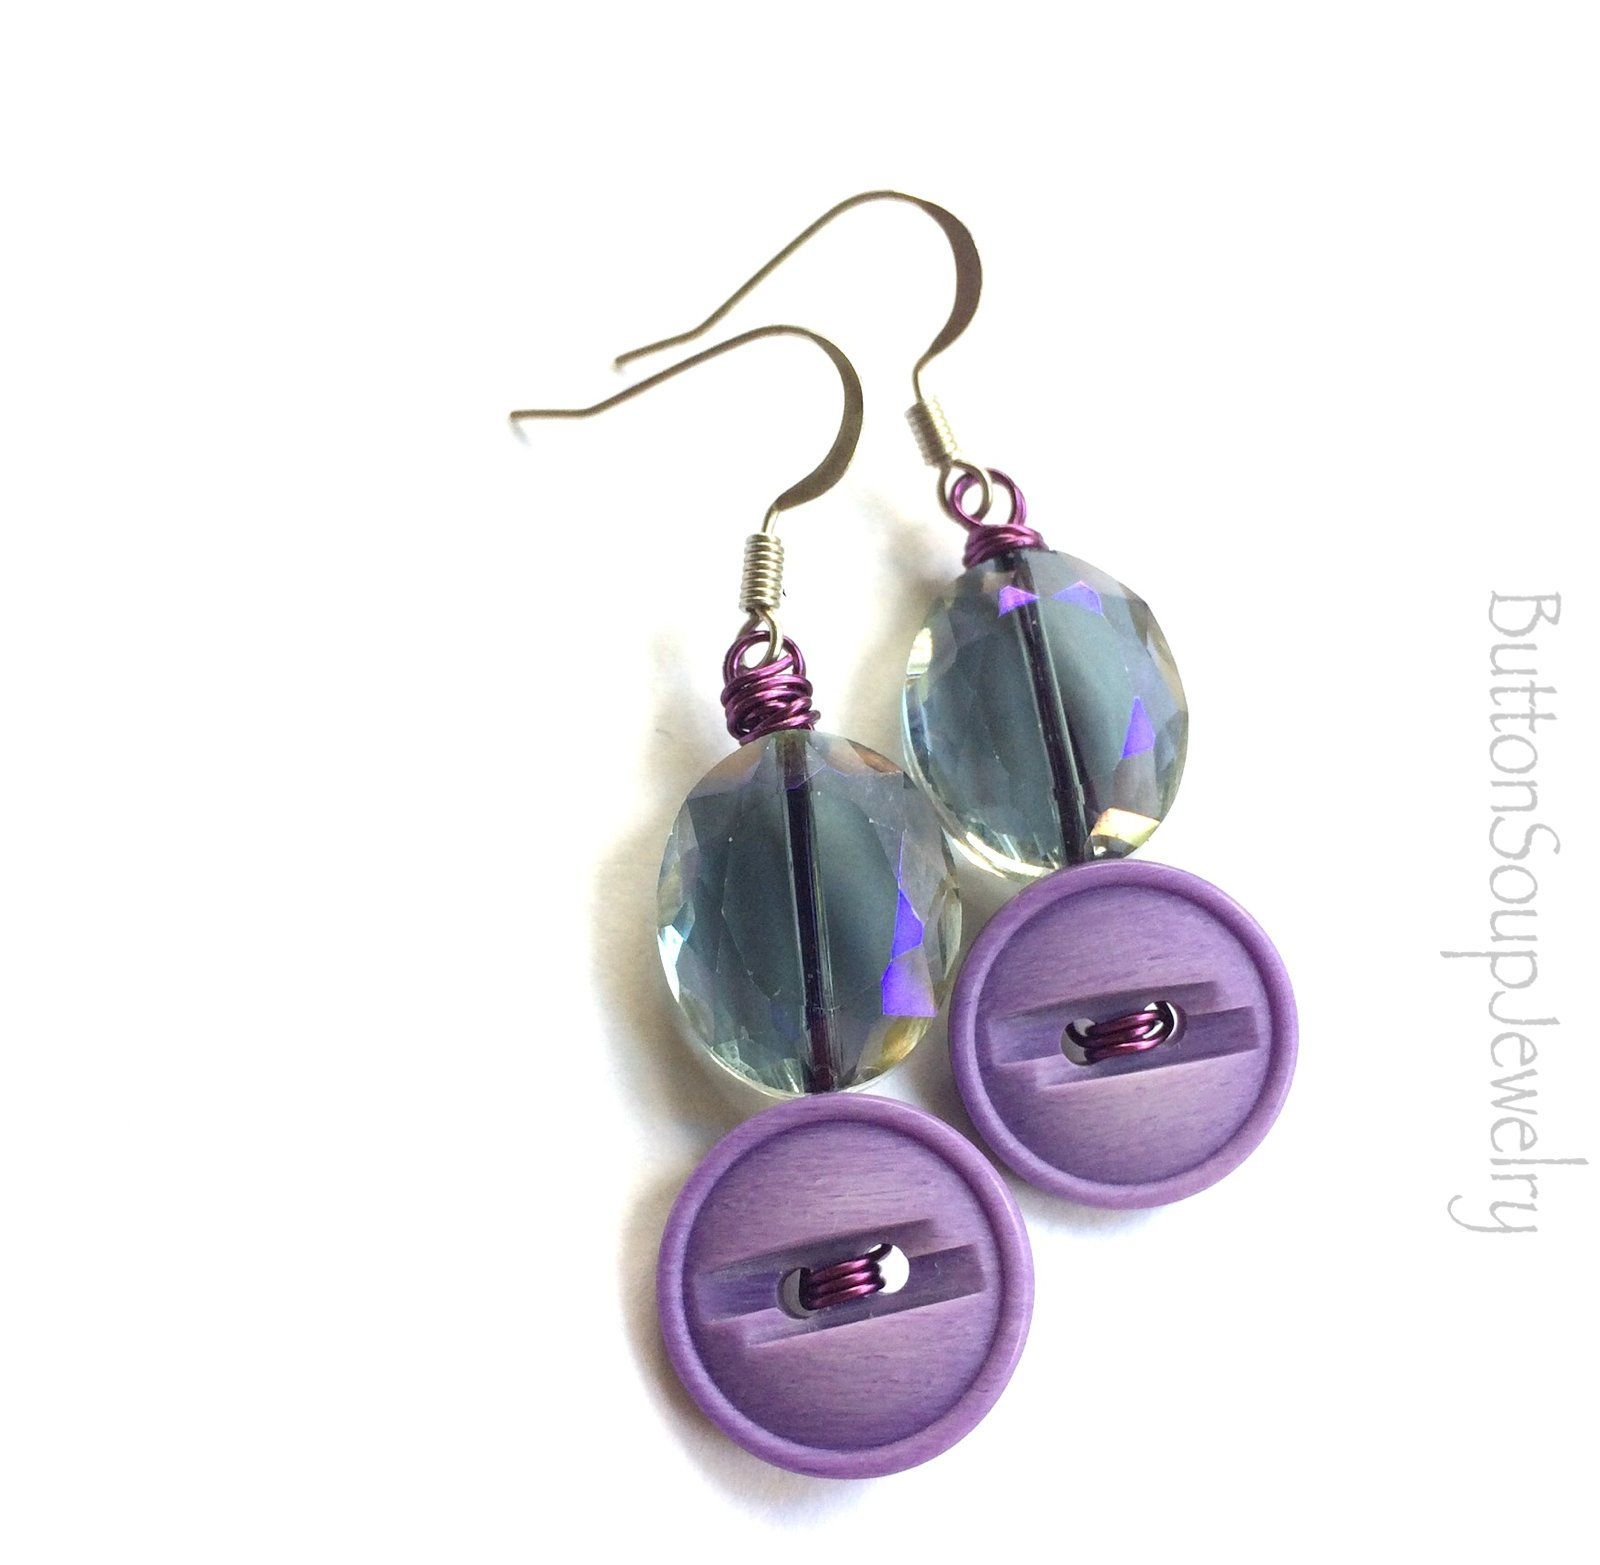 Earrings with Vintage Buttons Crystal Beads